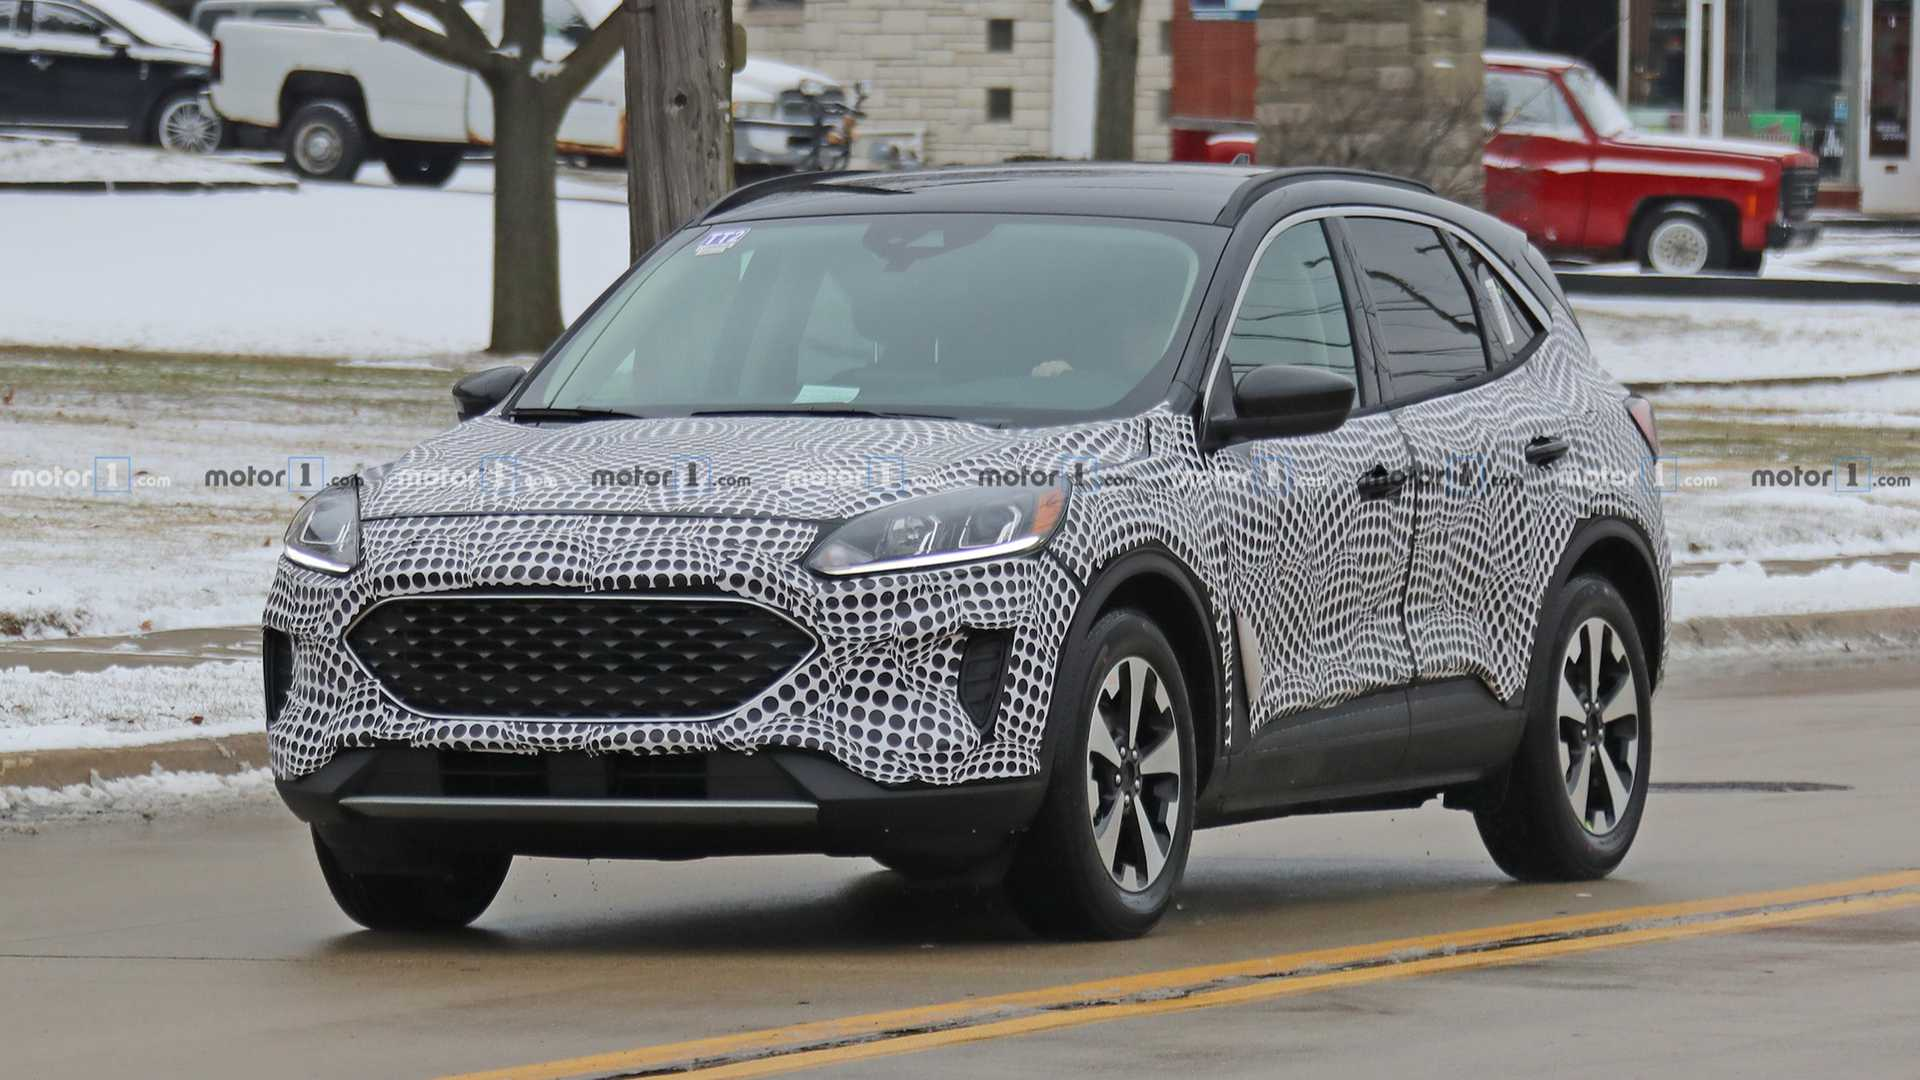 96 A 2020 Ford Escape Release Date and Concept